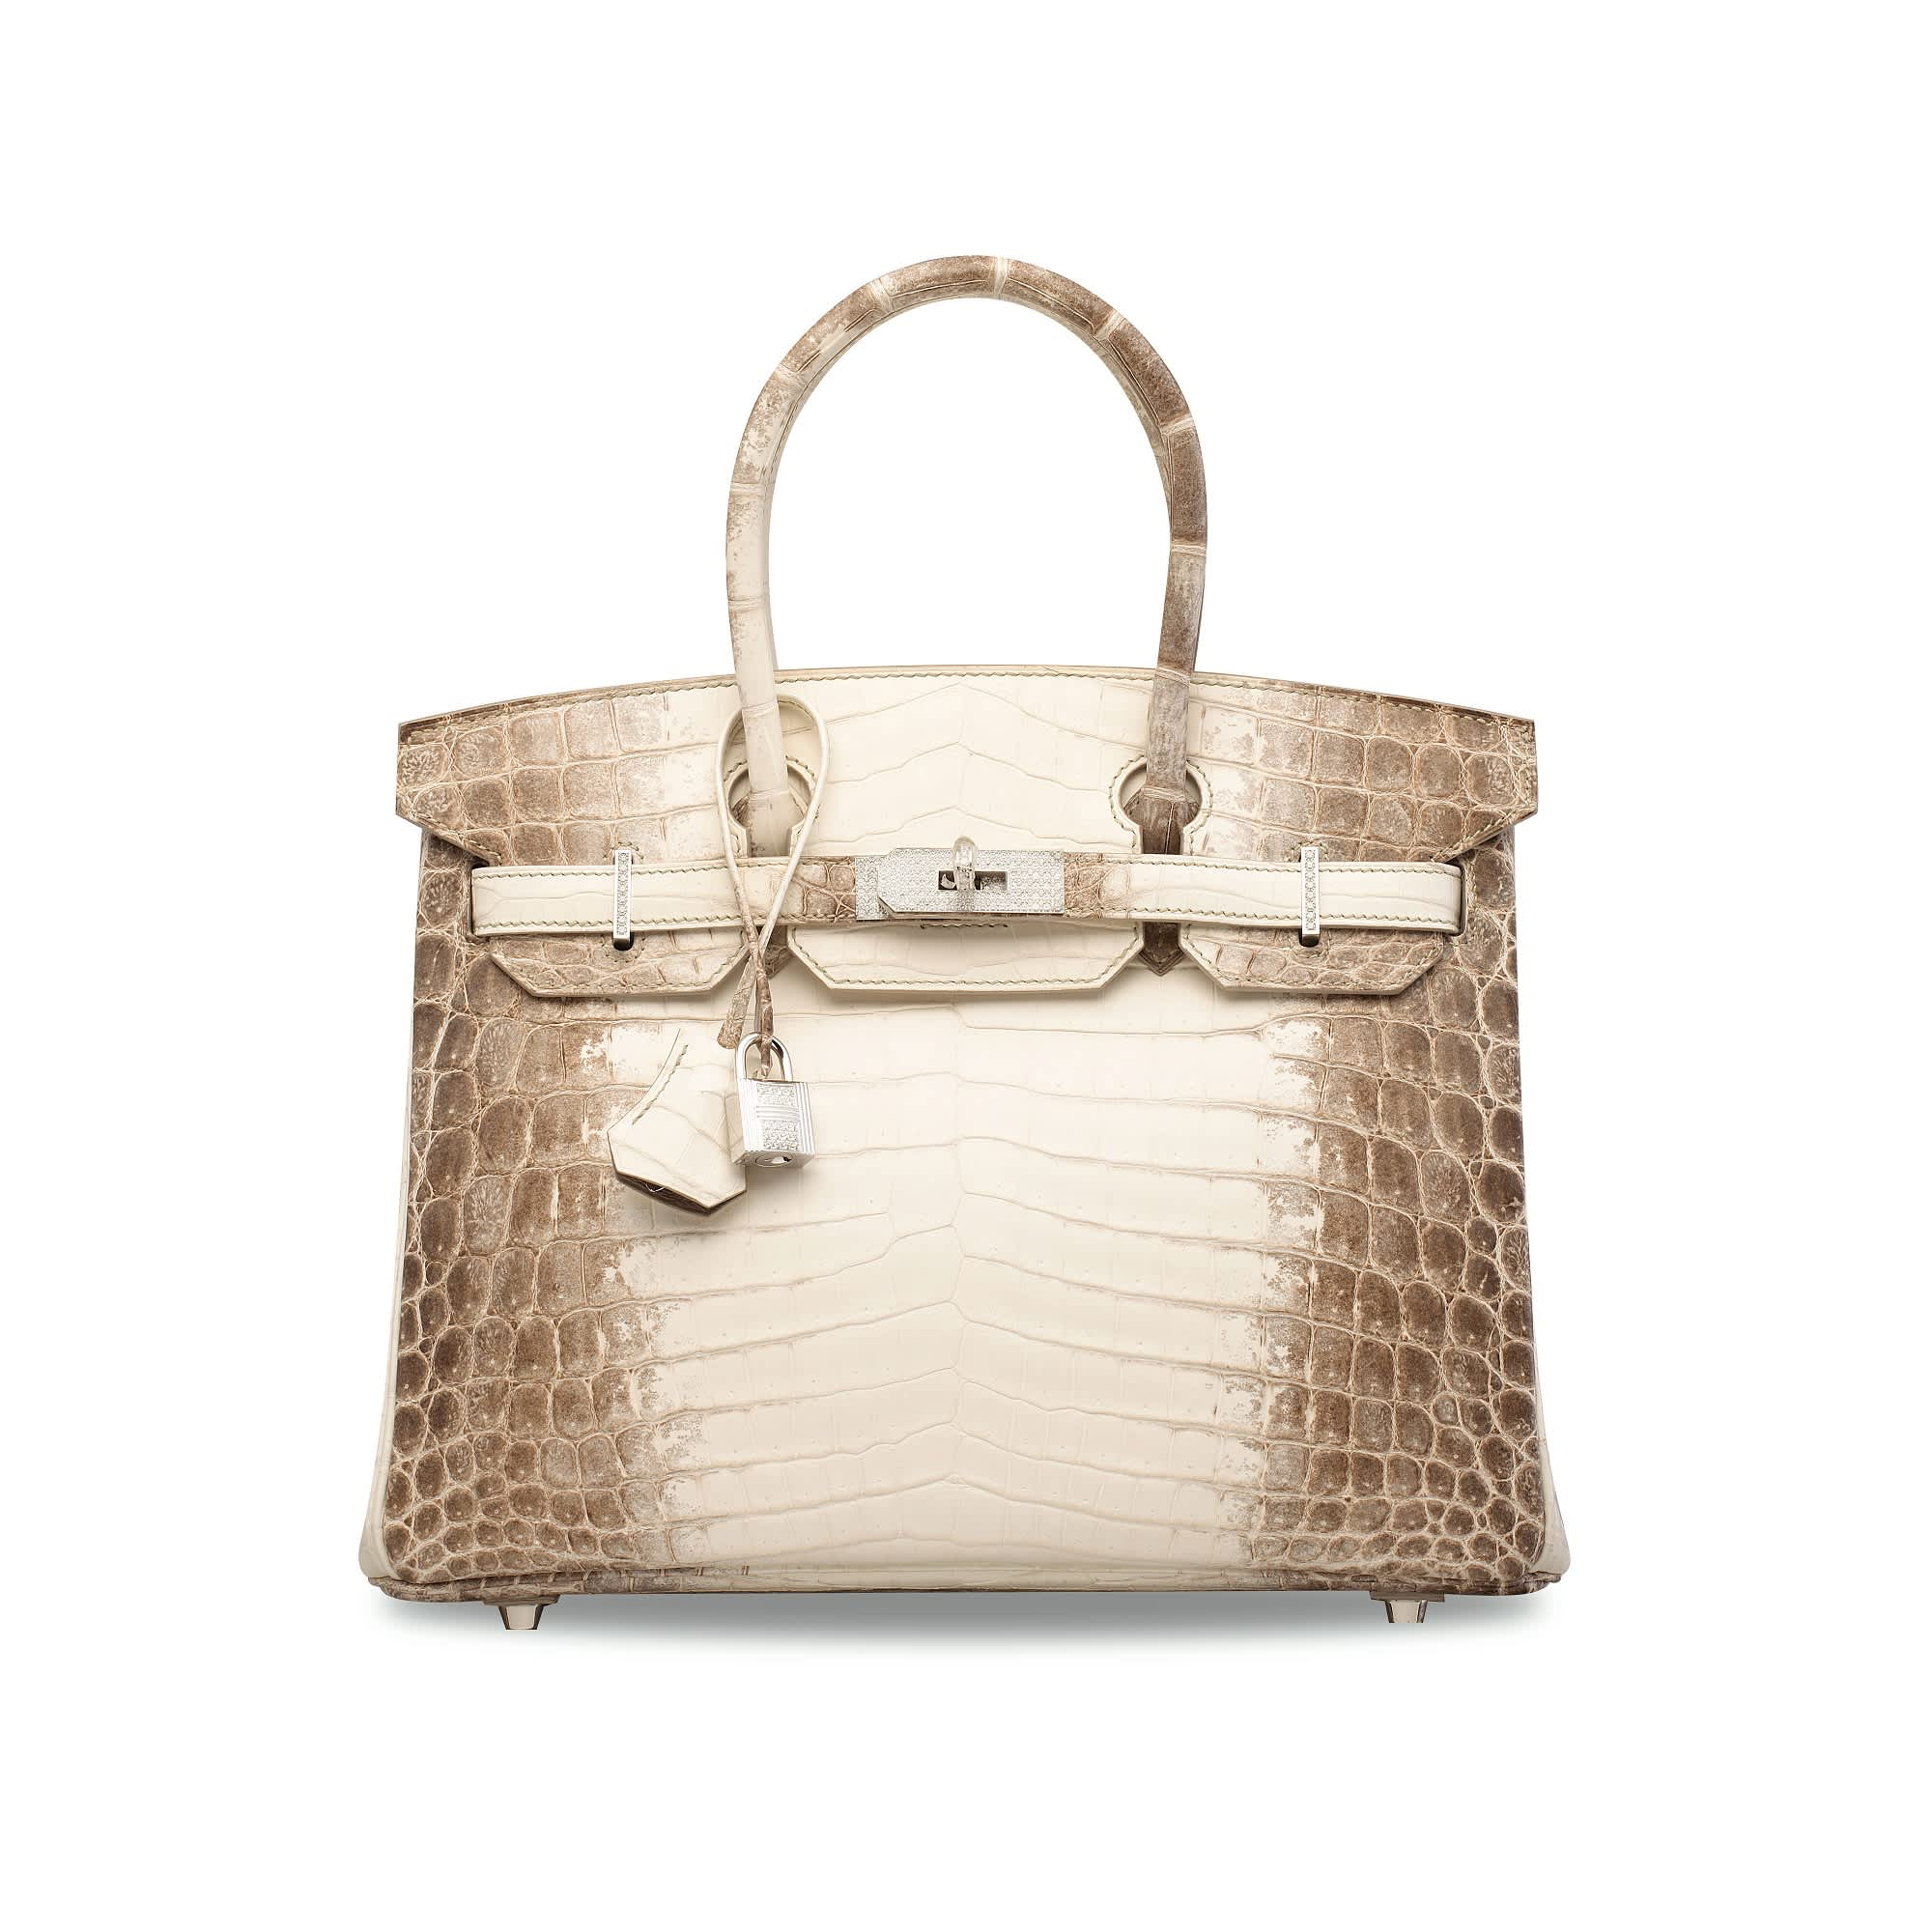 5514e1f1a4 This $379,261 Hermes Birkin handbag is the most expensive ever sold